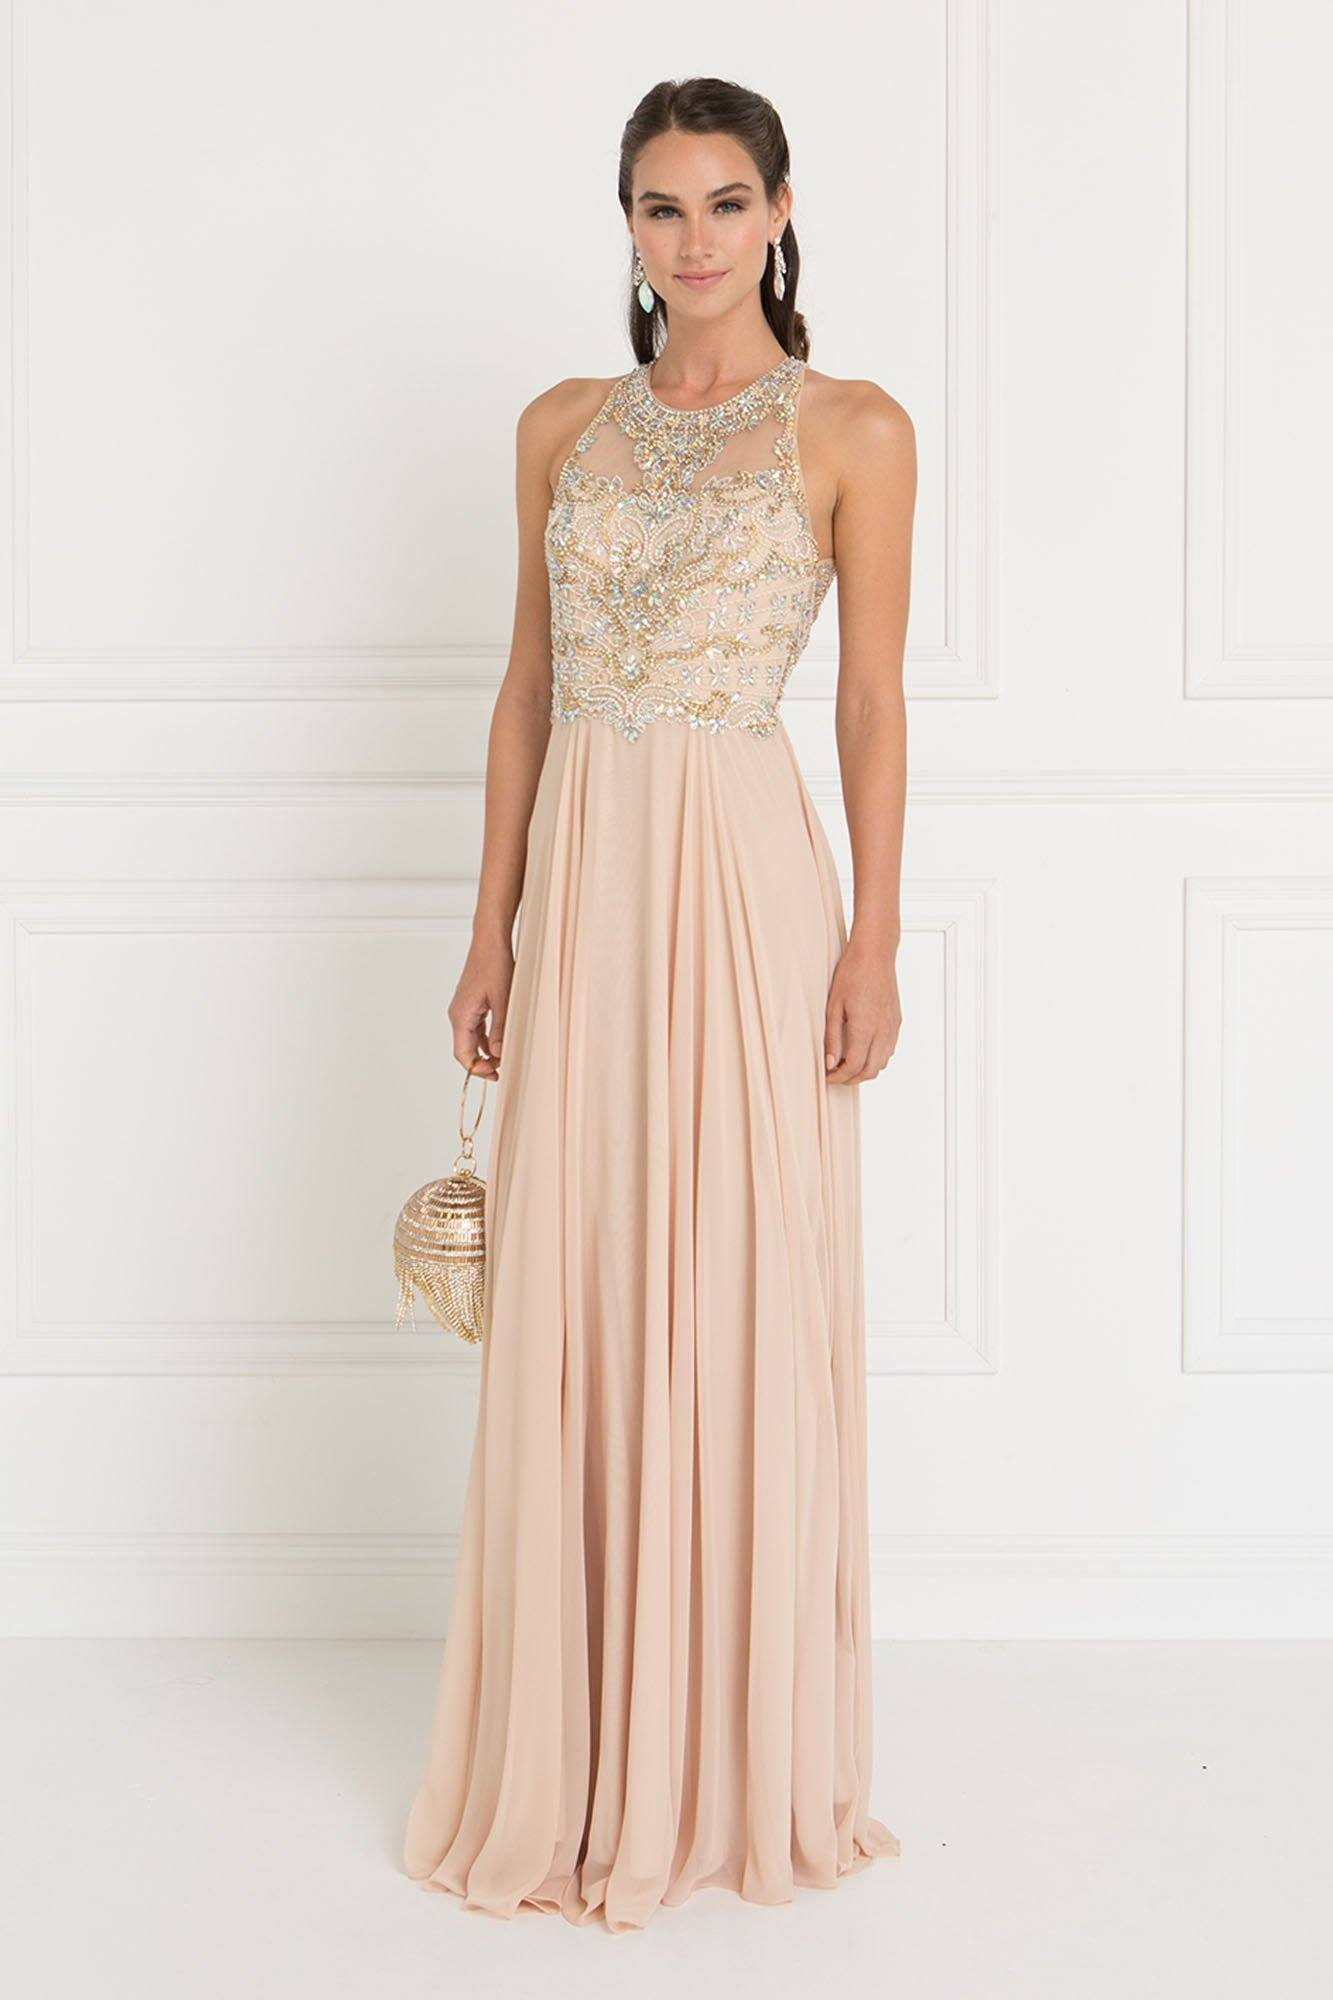 a3bdc837b57 Sheer illusion champagne prom dress GLS 1564-Simply Fab Dress ...